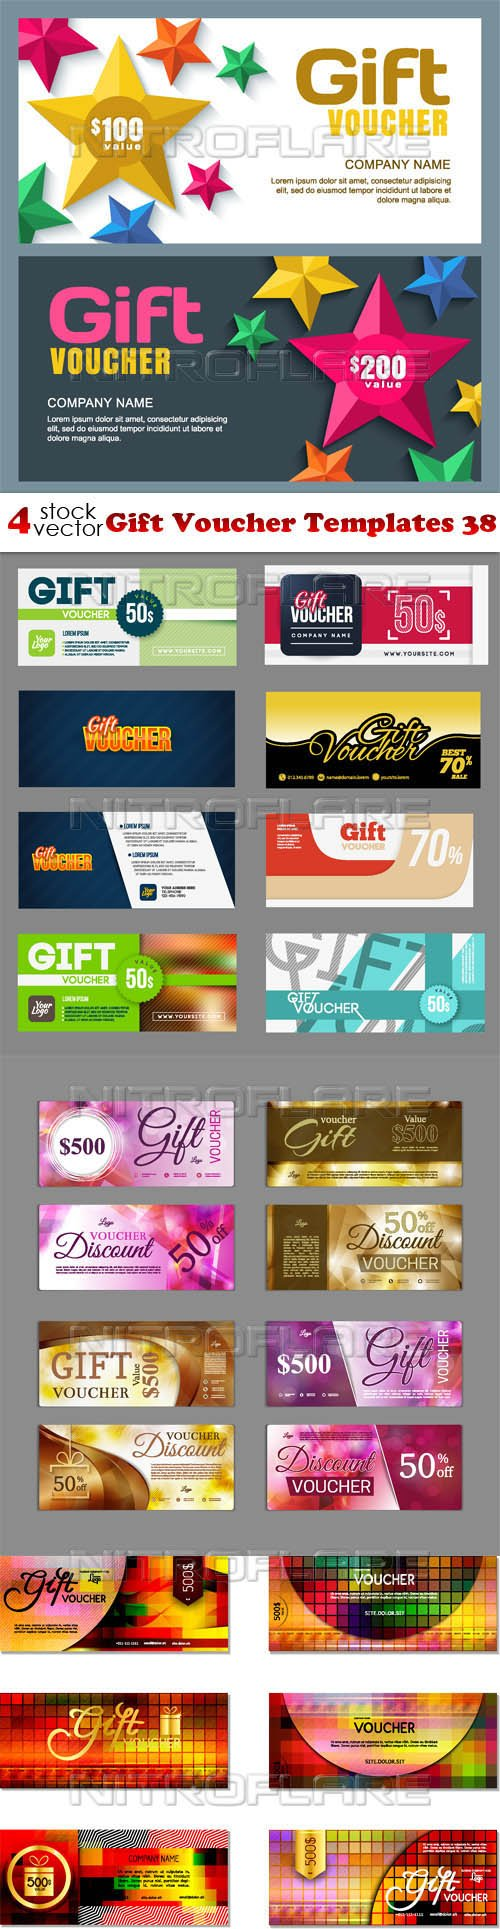 Vectors - Gift Voucher Templates 38